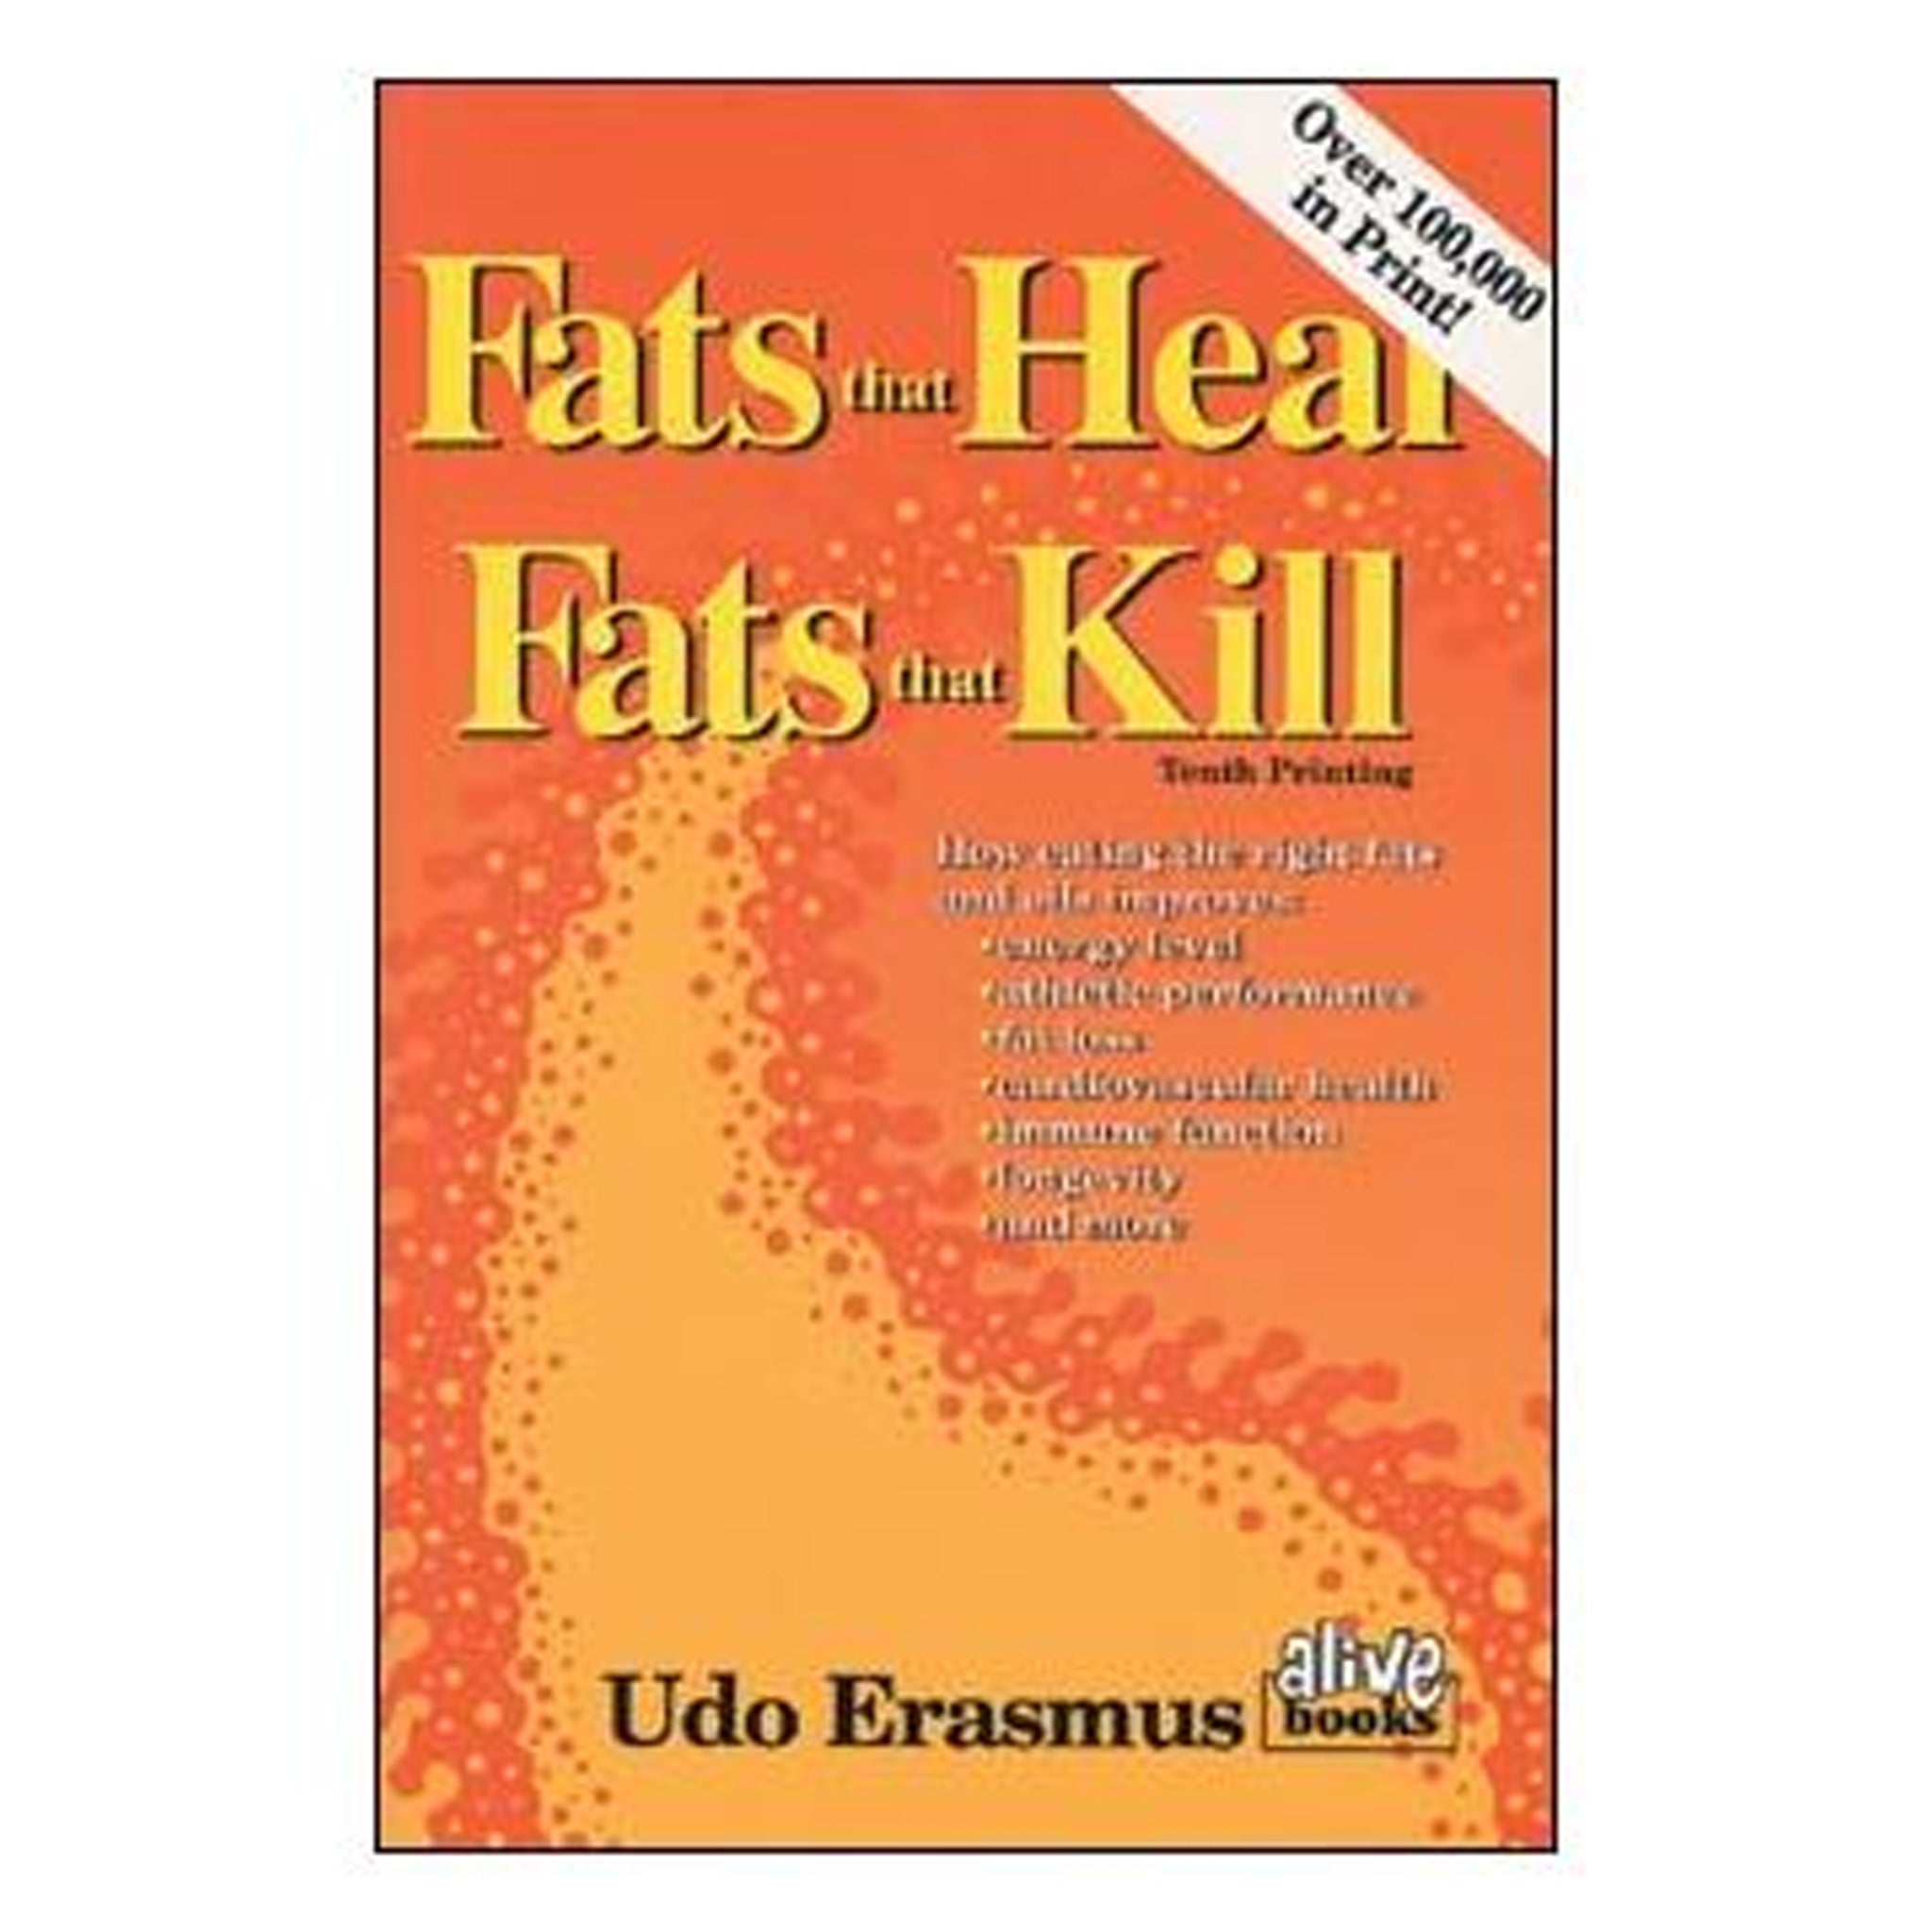 Fats That Heal, Fats That Kill, GPBUE01 - Tribest